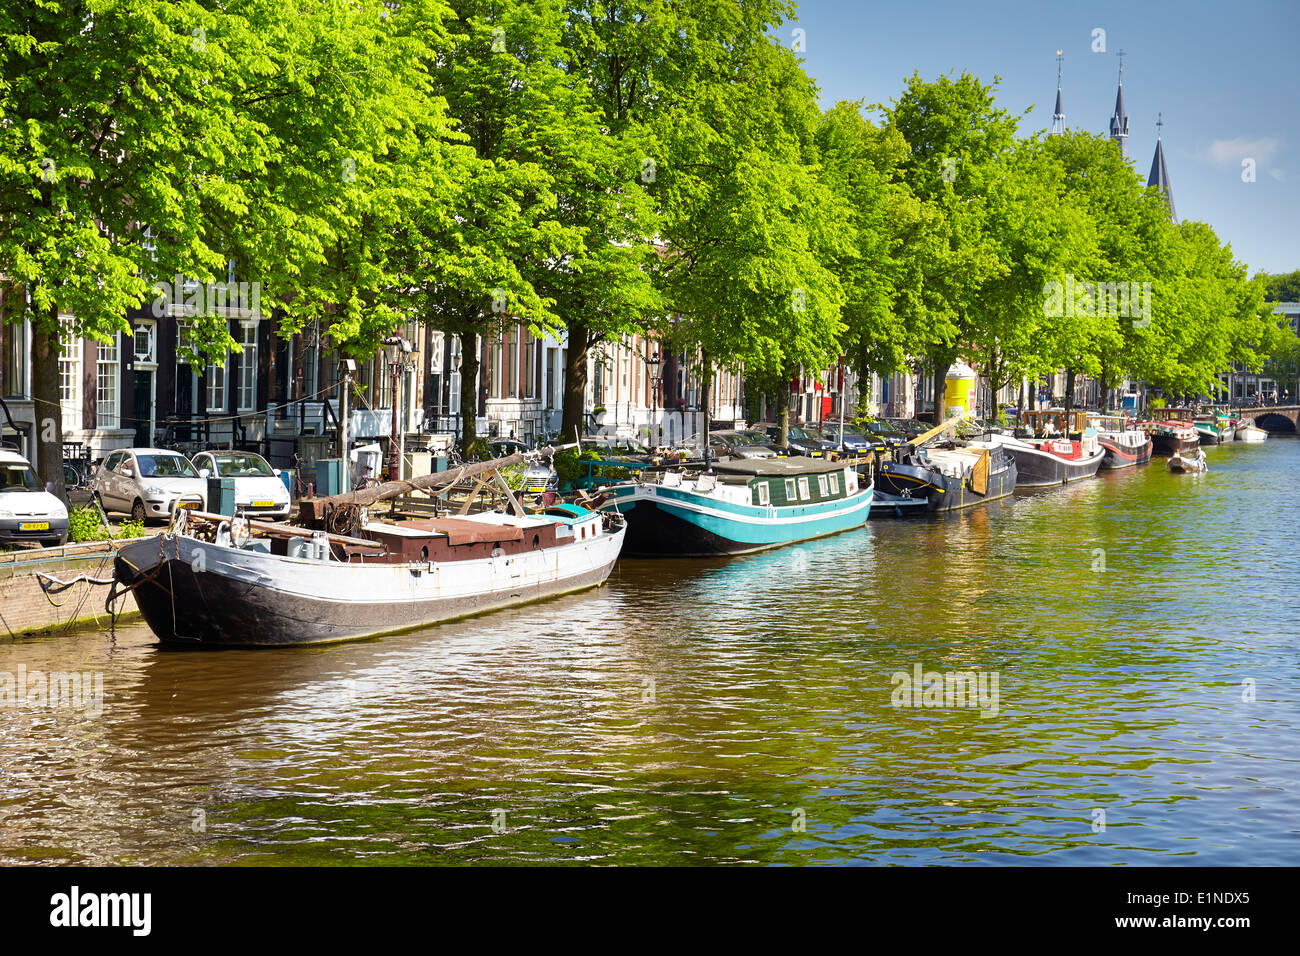 Houseboat barge, Amsterdam canal - Holland Netherlands - Stock Image